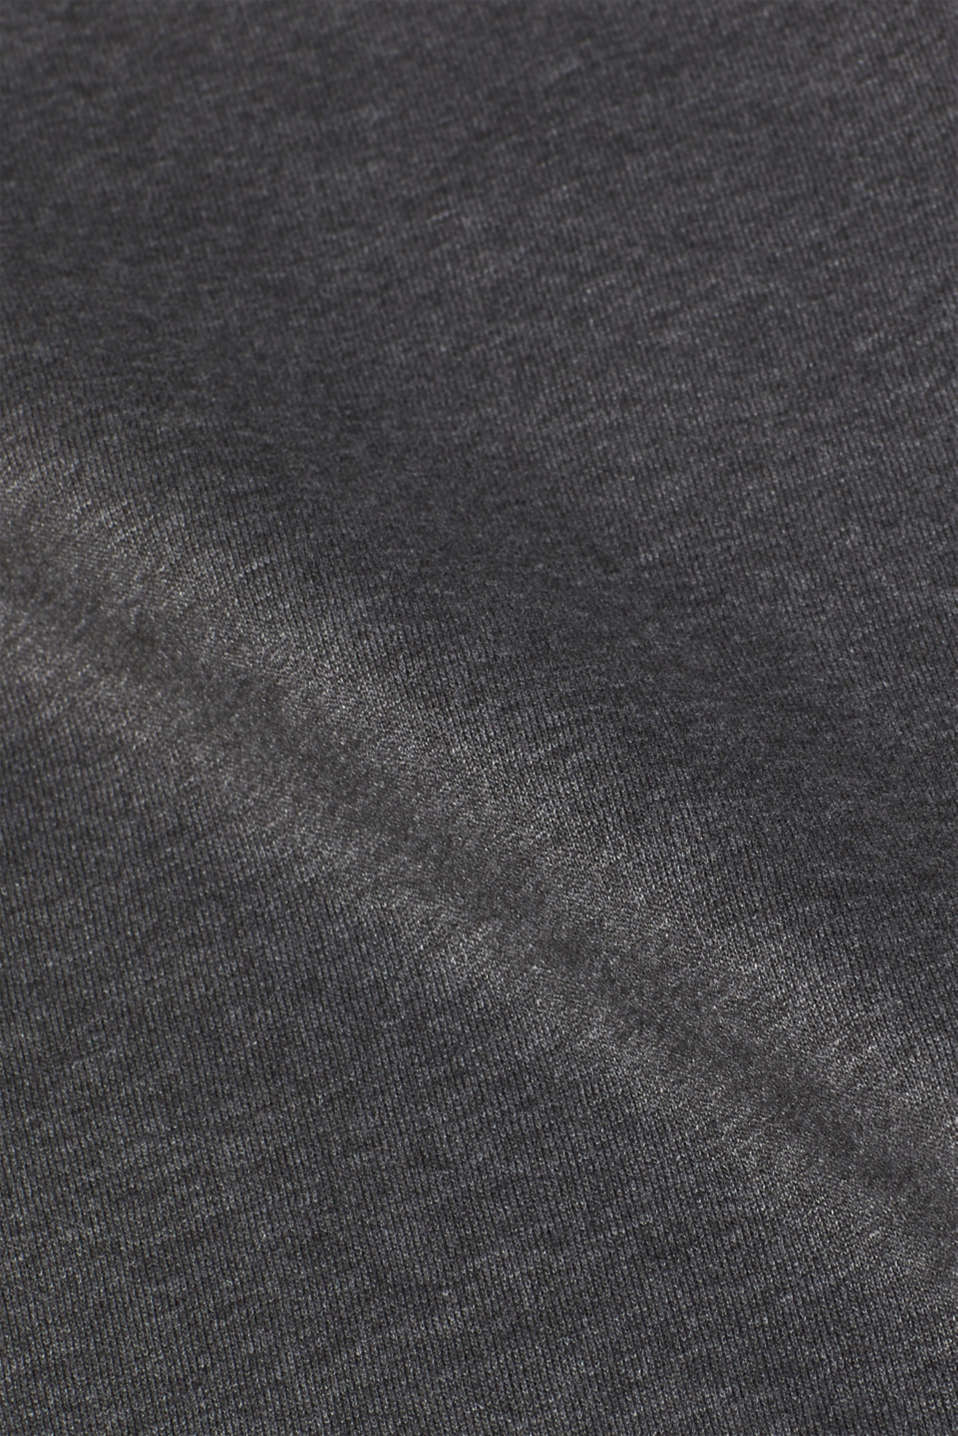 Blended cotton sweatshirt, DARK GREY, detail image number 3